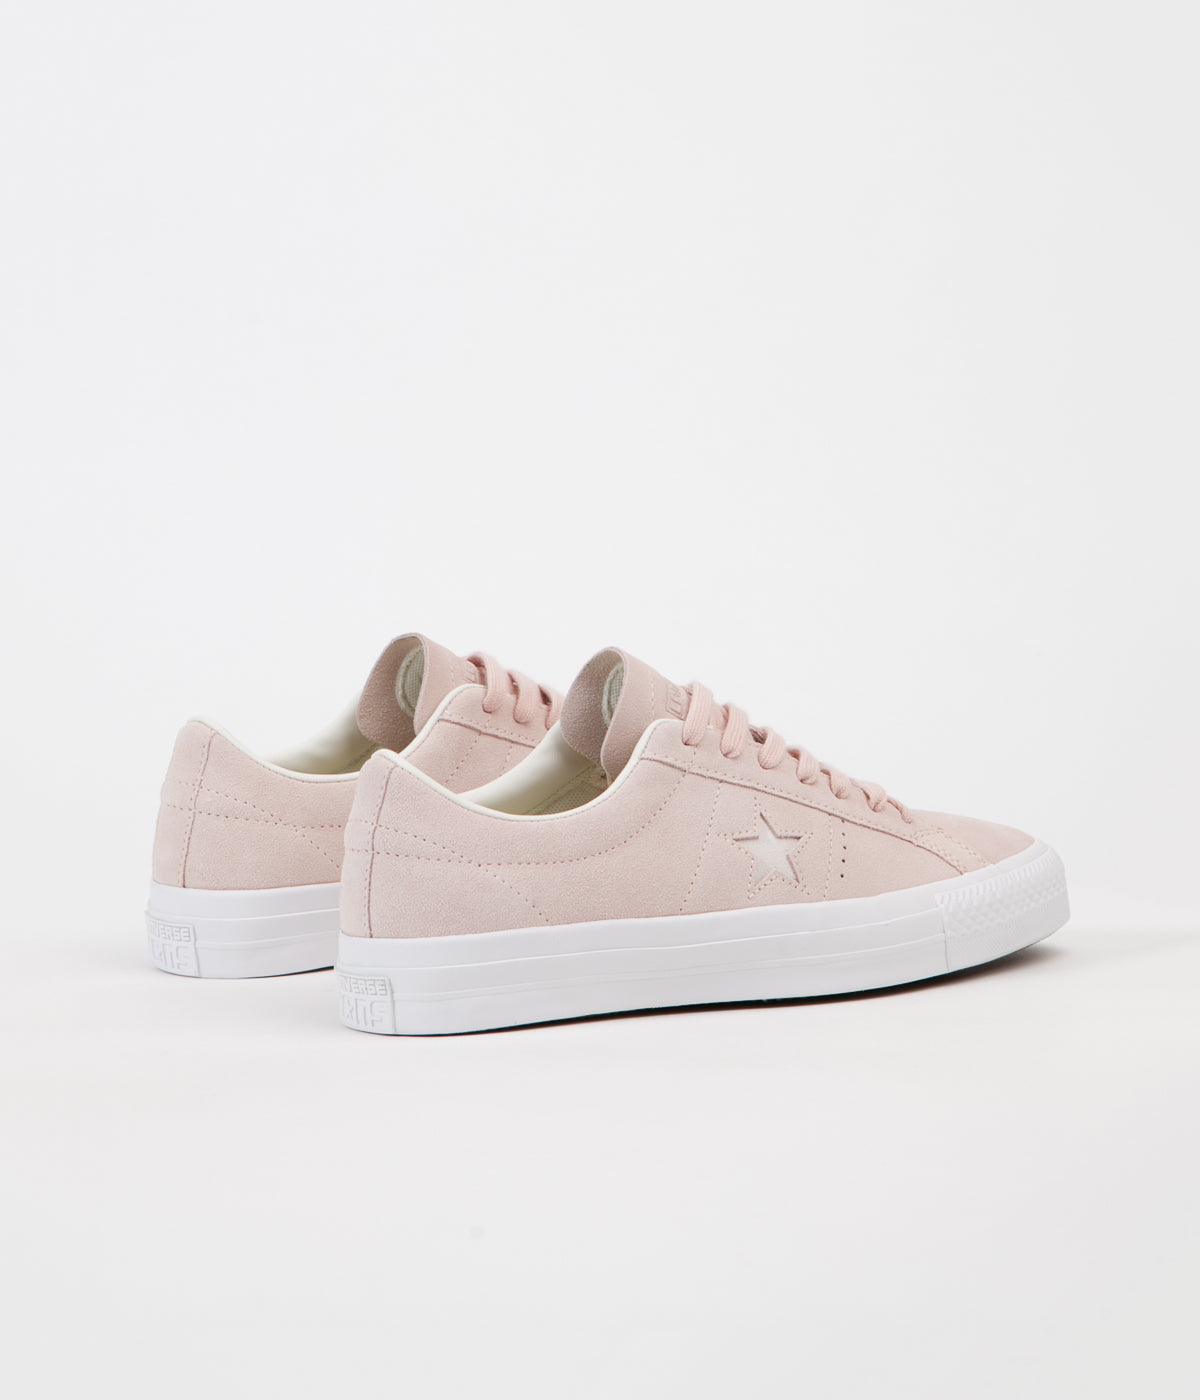 cde53f3e3552 ... Converse One Star Pro Ox Shoes - Dusk Pink   Egret   White ...